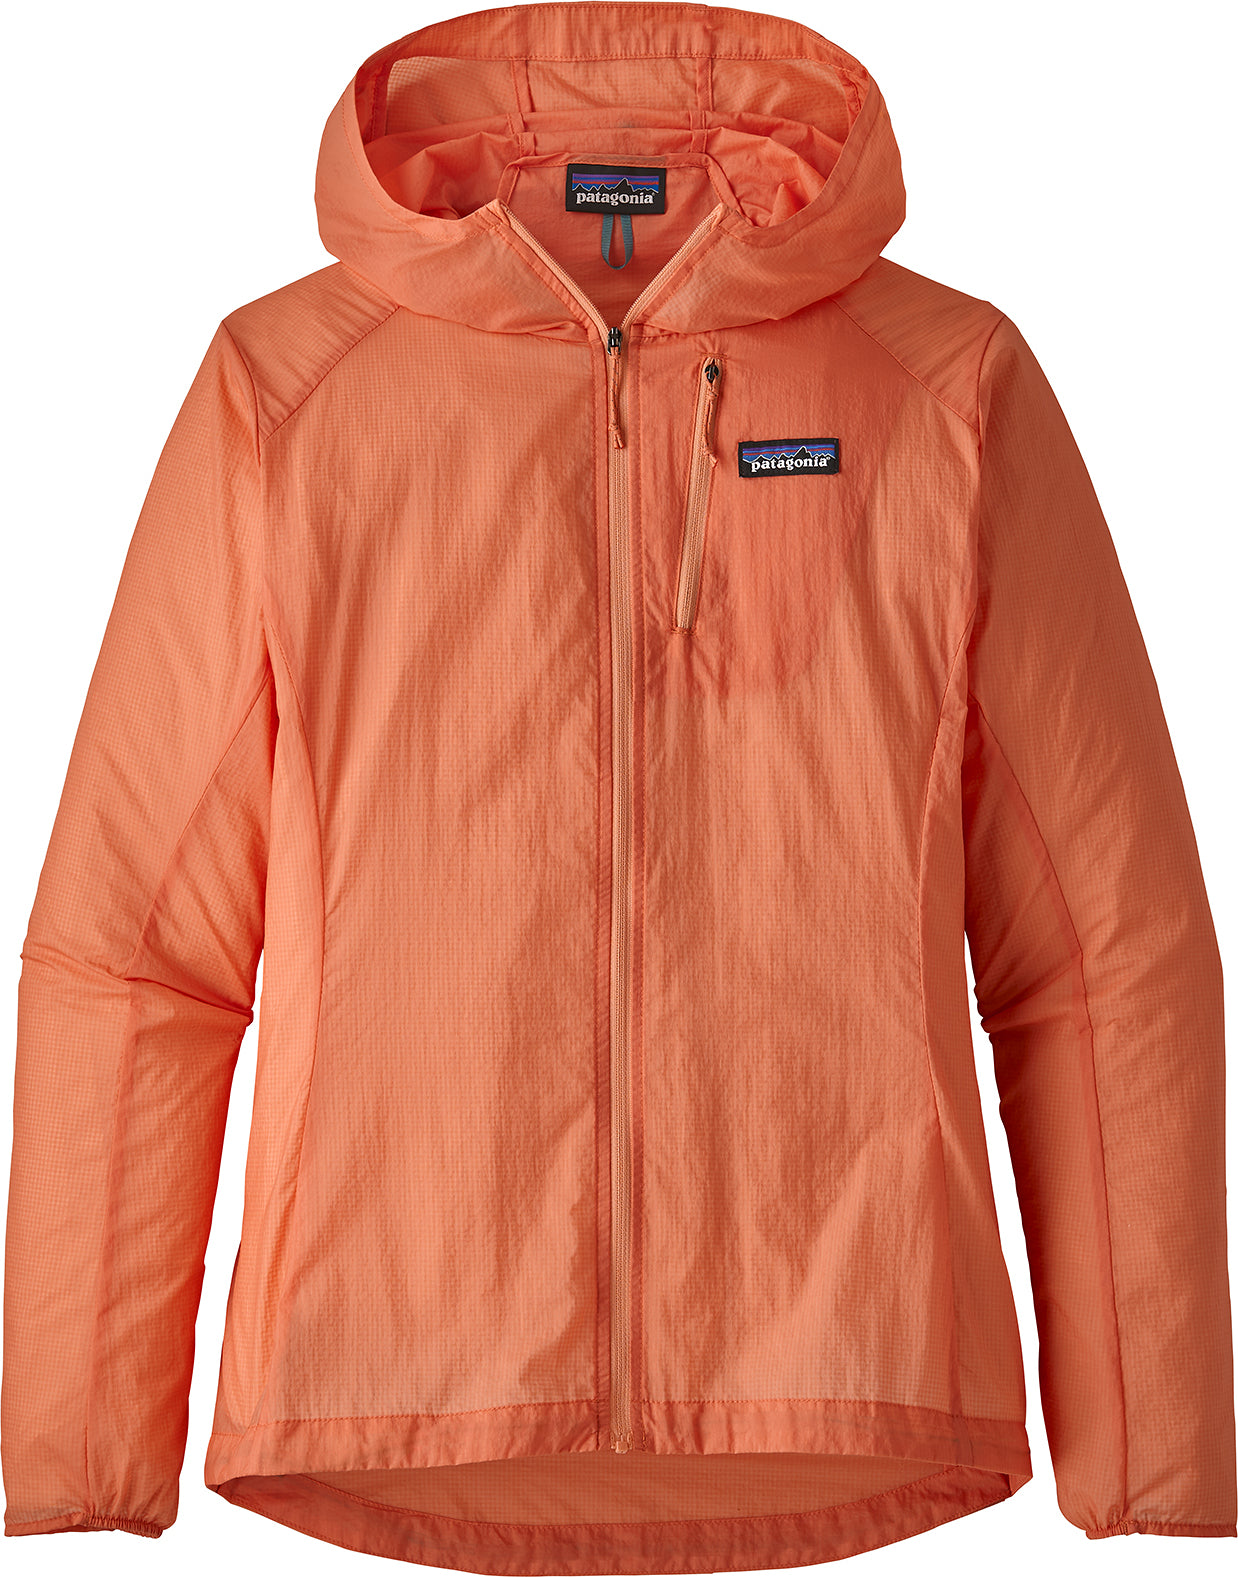 3b9a672cb9a8 Patagonia Houdini Jacket - Women s